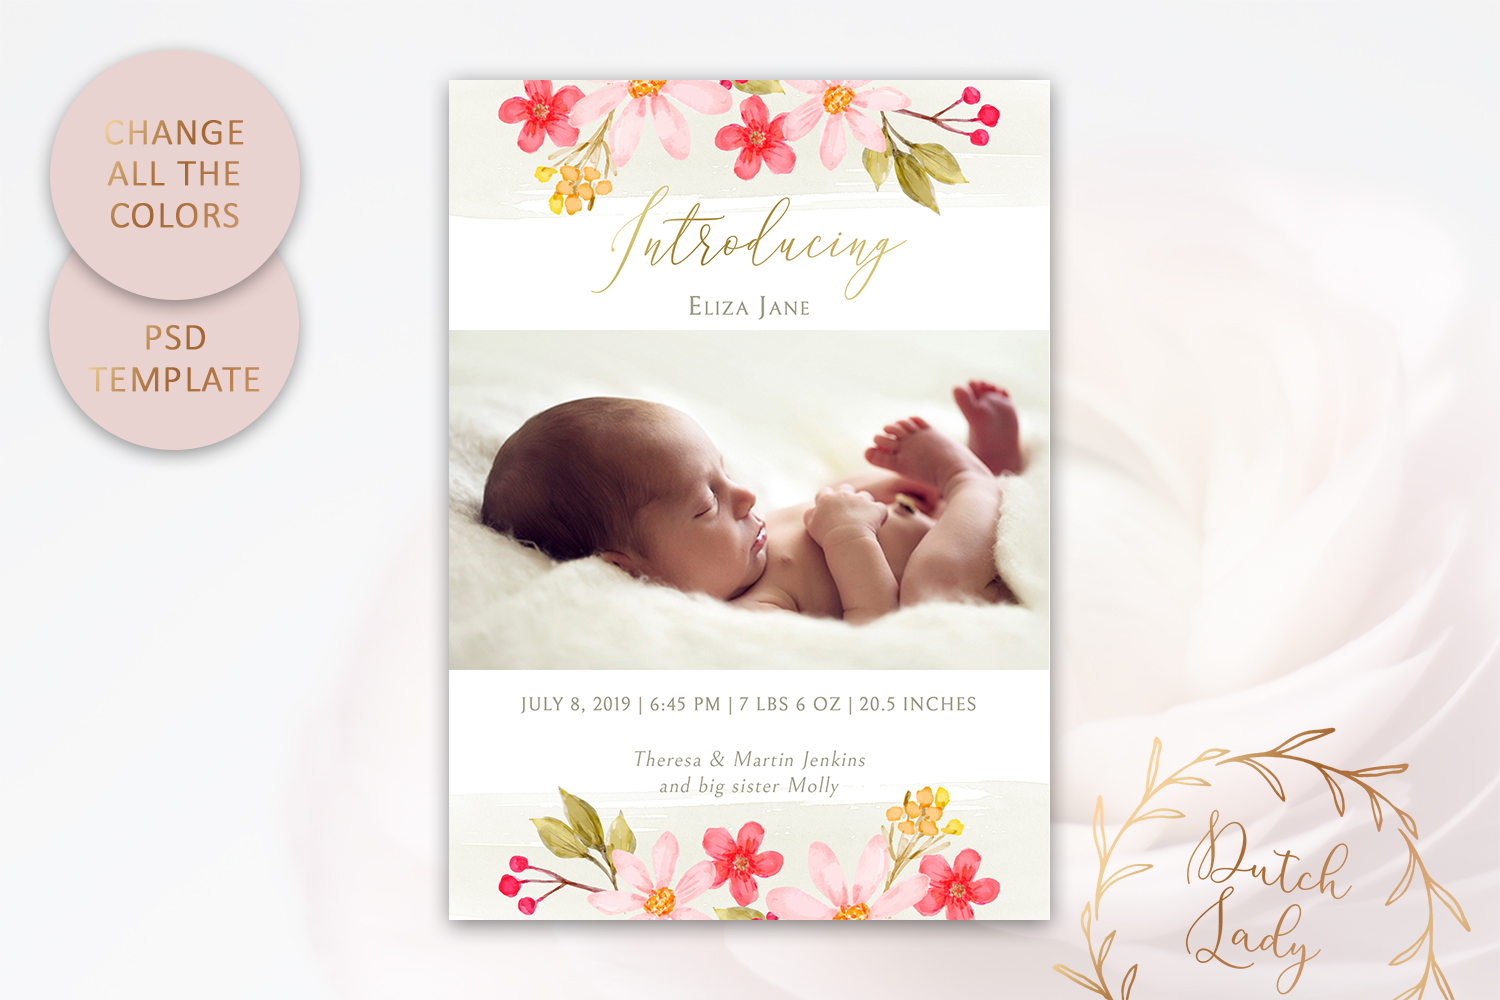 PSD Birth Announcement Card Template - Design #5 example image 3